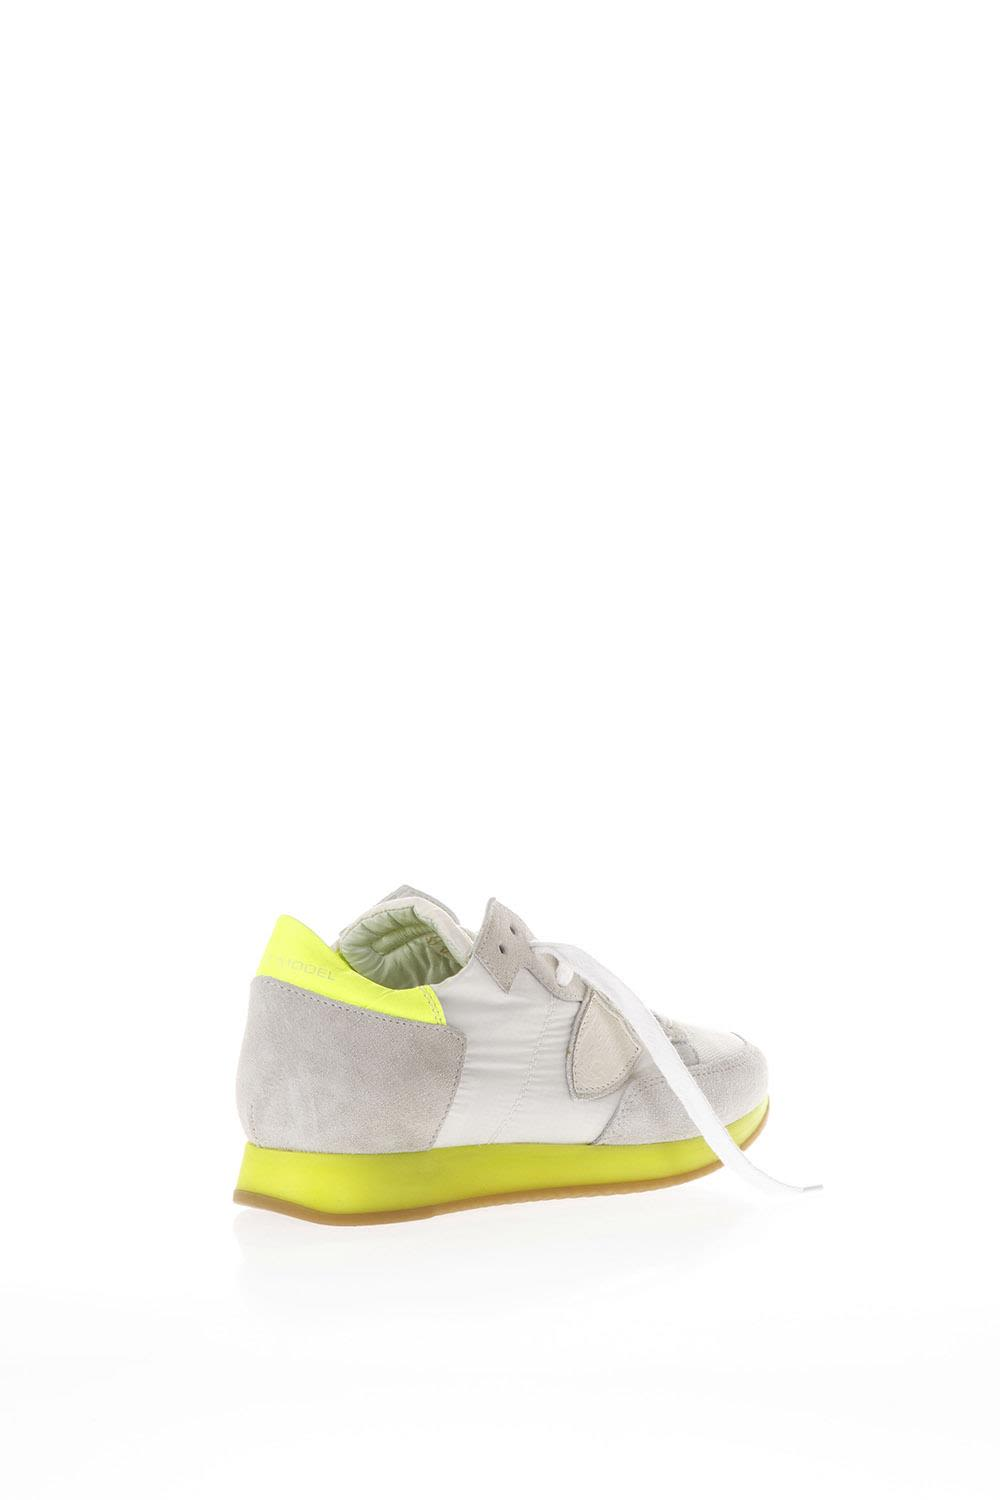 Philippe model Grey And Yellow Suede And Nylon Tropez Sneakers Hot Sale Footlocker Pictures With Paypal Online glLR9ljQ